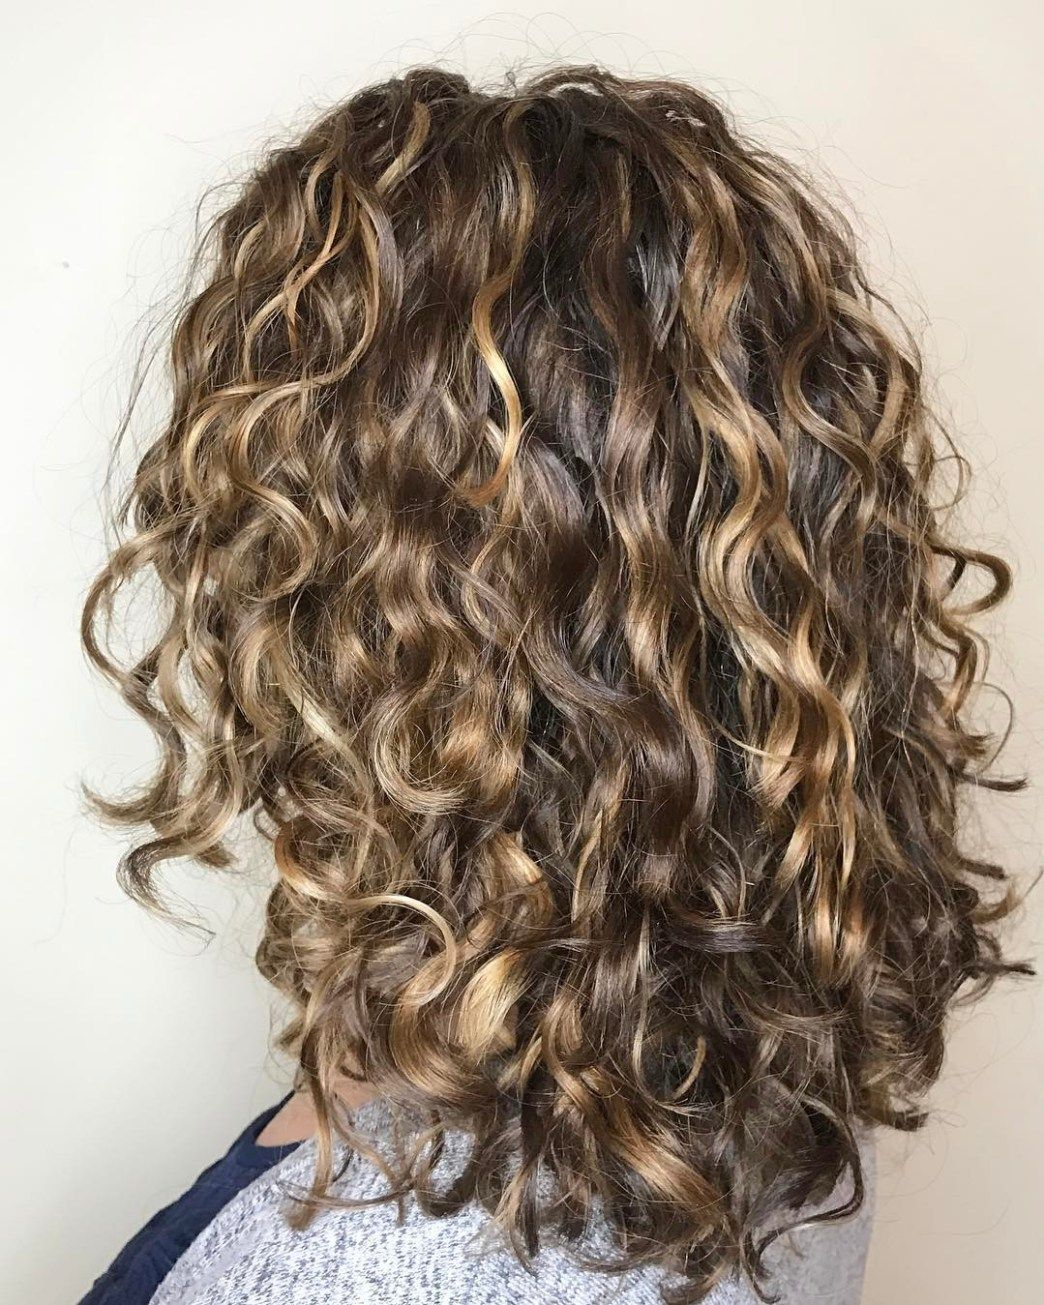 60 Styles And Cuts For Naturally Curly Hair Curly Girl Pinterest